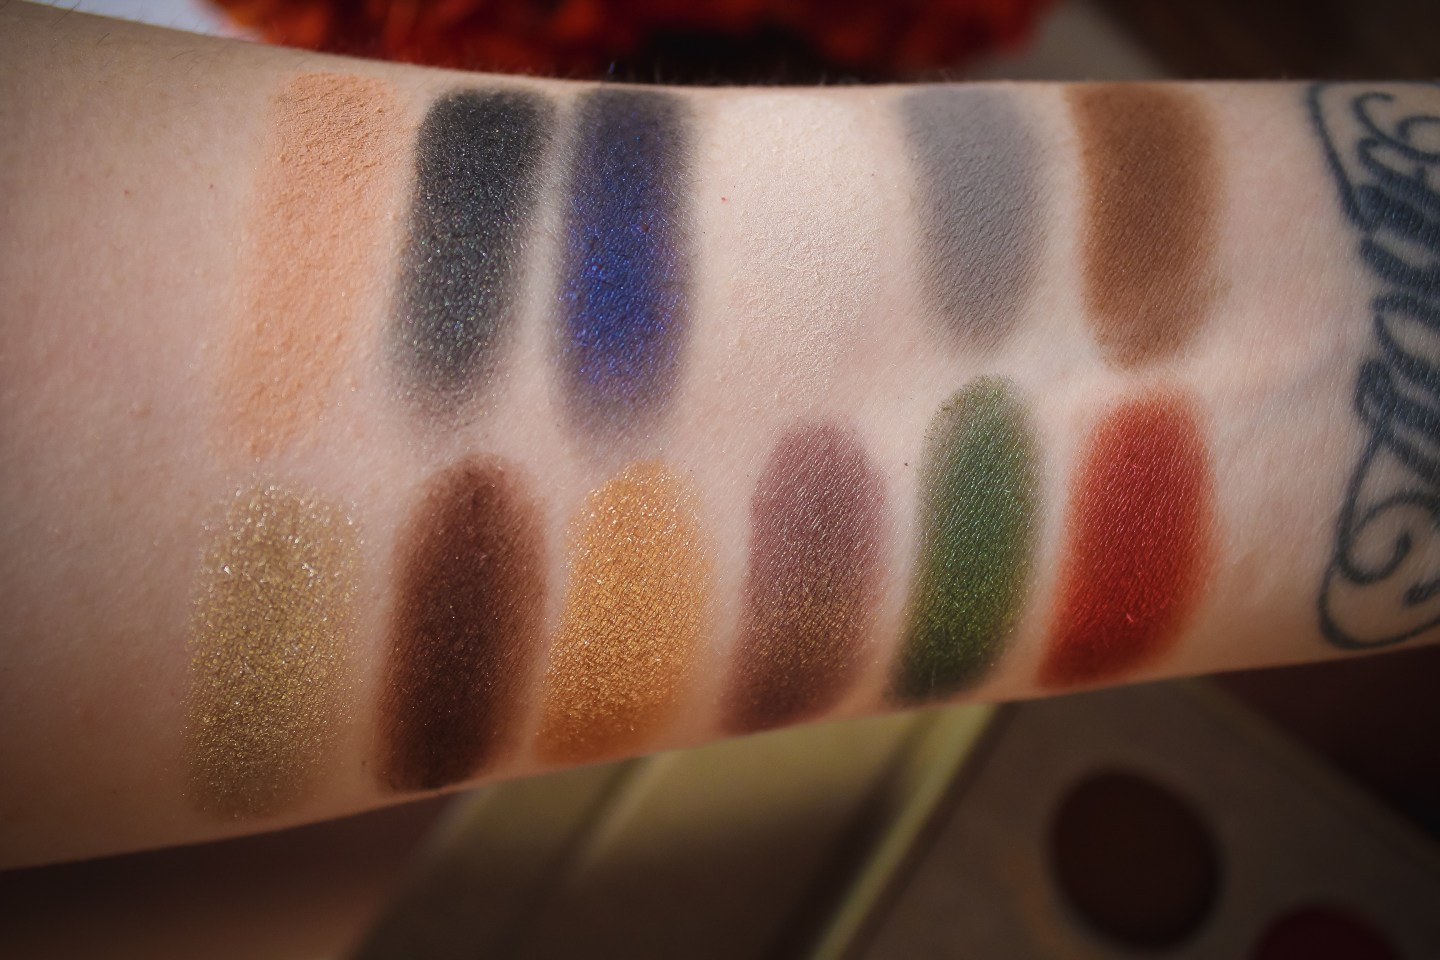 Storybook Cosmetics Wizardry and Witchcraft Palette Swatch